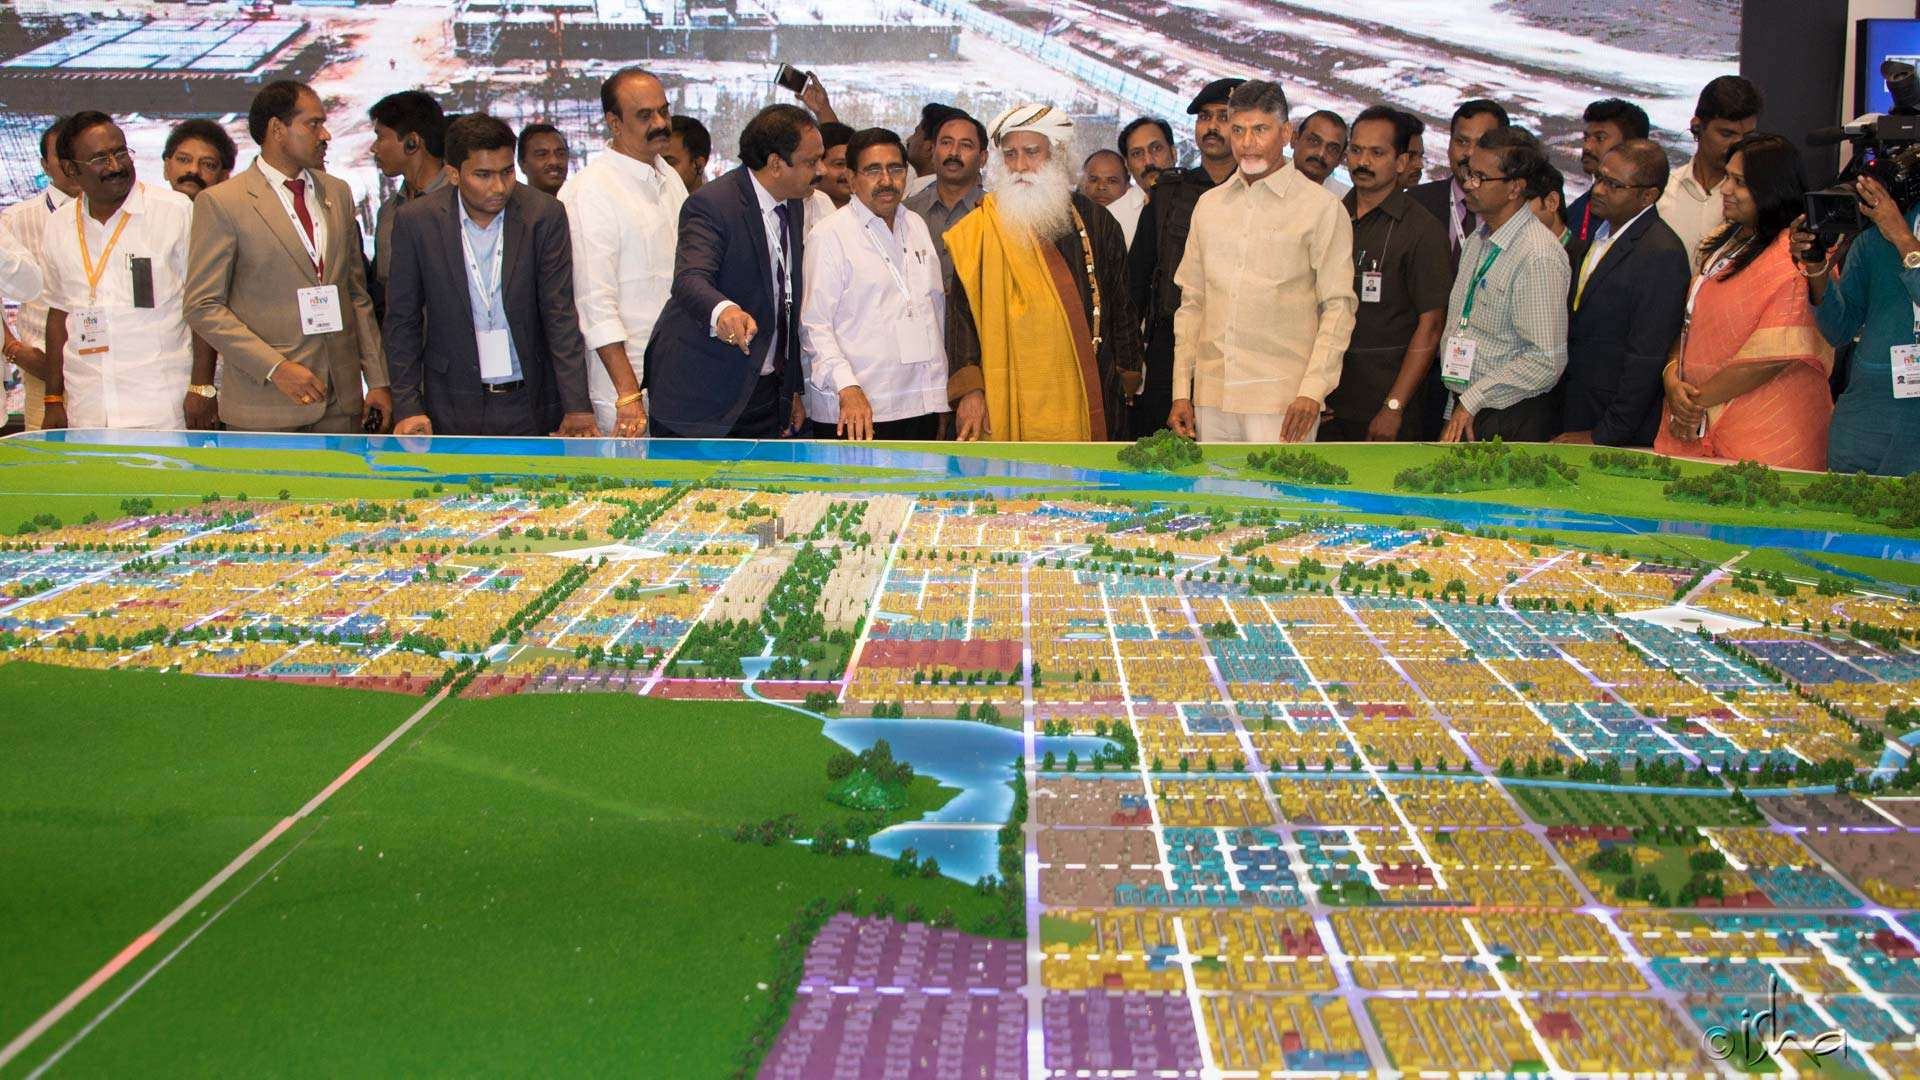 A larger overview of the Amaravati city design